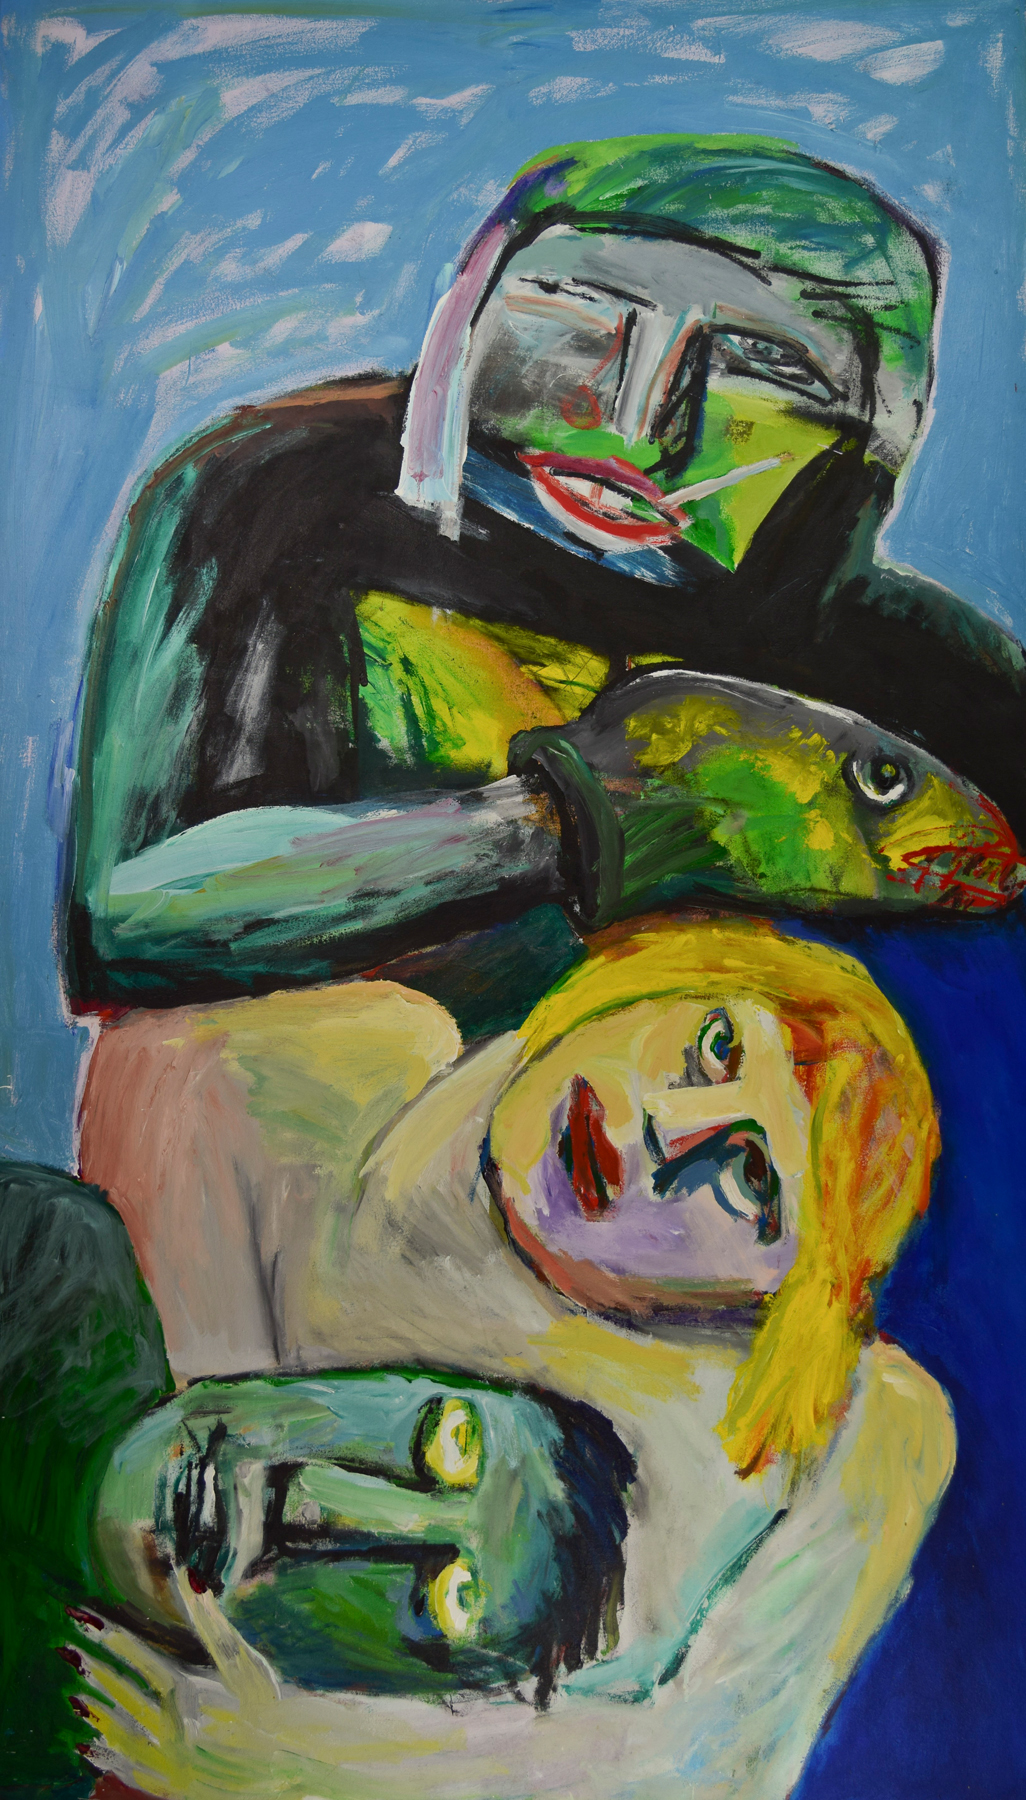 Untitled (Puppets), 1993 Acrylic on canvas 84 x 48 in. (213.4 x 122 cm.) Photography courtesy of Joshua DeMello